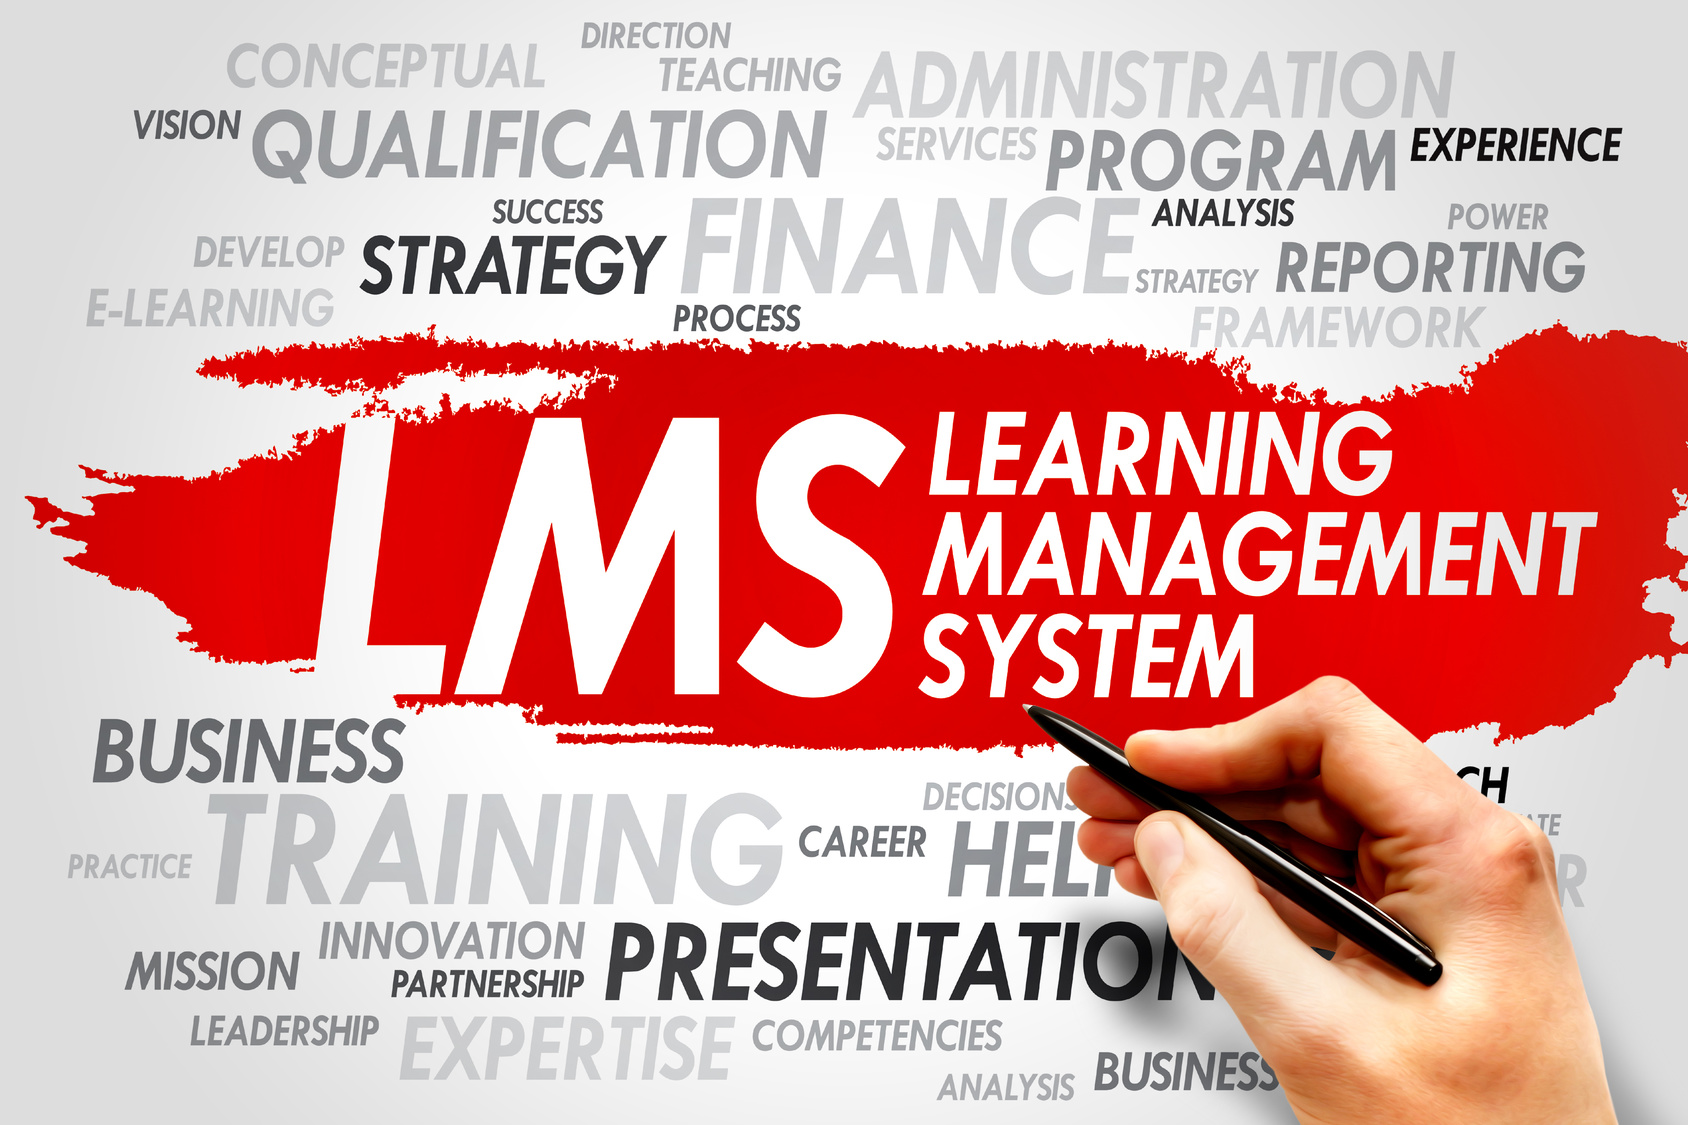 DOCEBO LEARN (LMS) - Learning Management System